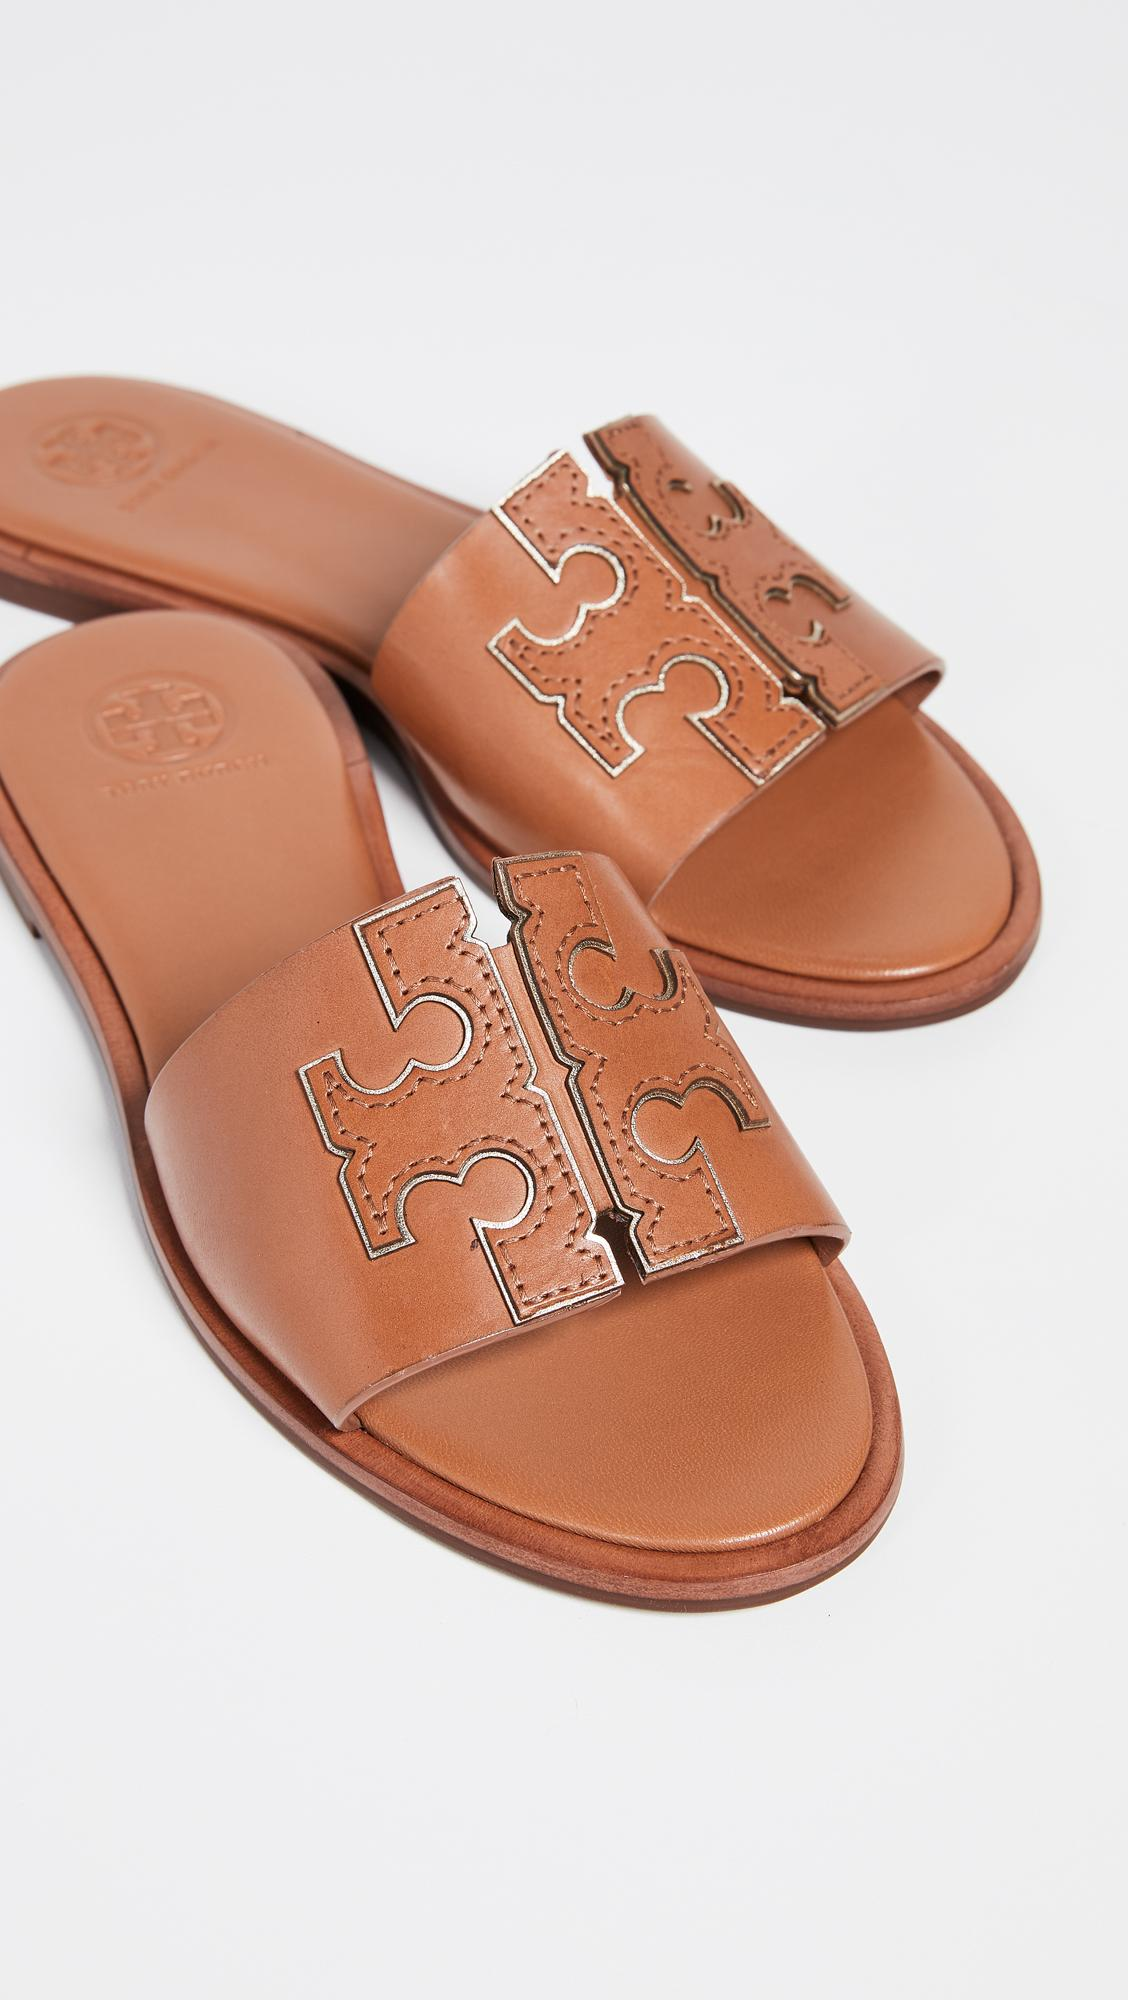 a04c442b107a Tory Burch Ines Slide Sandals in Brown - Lyst